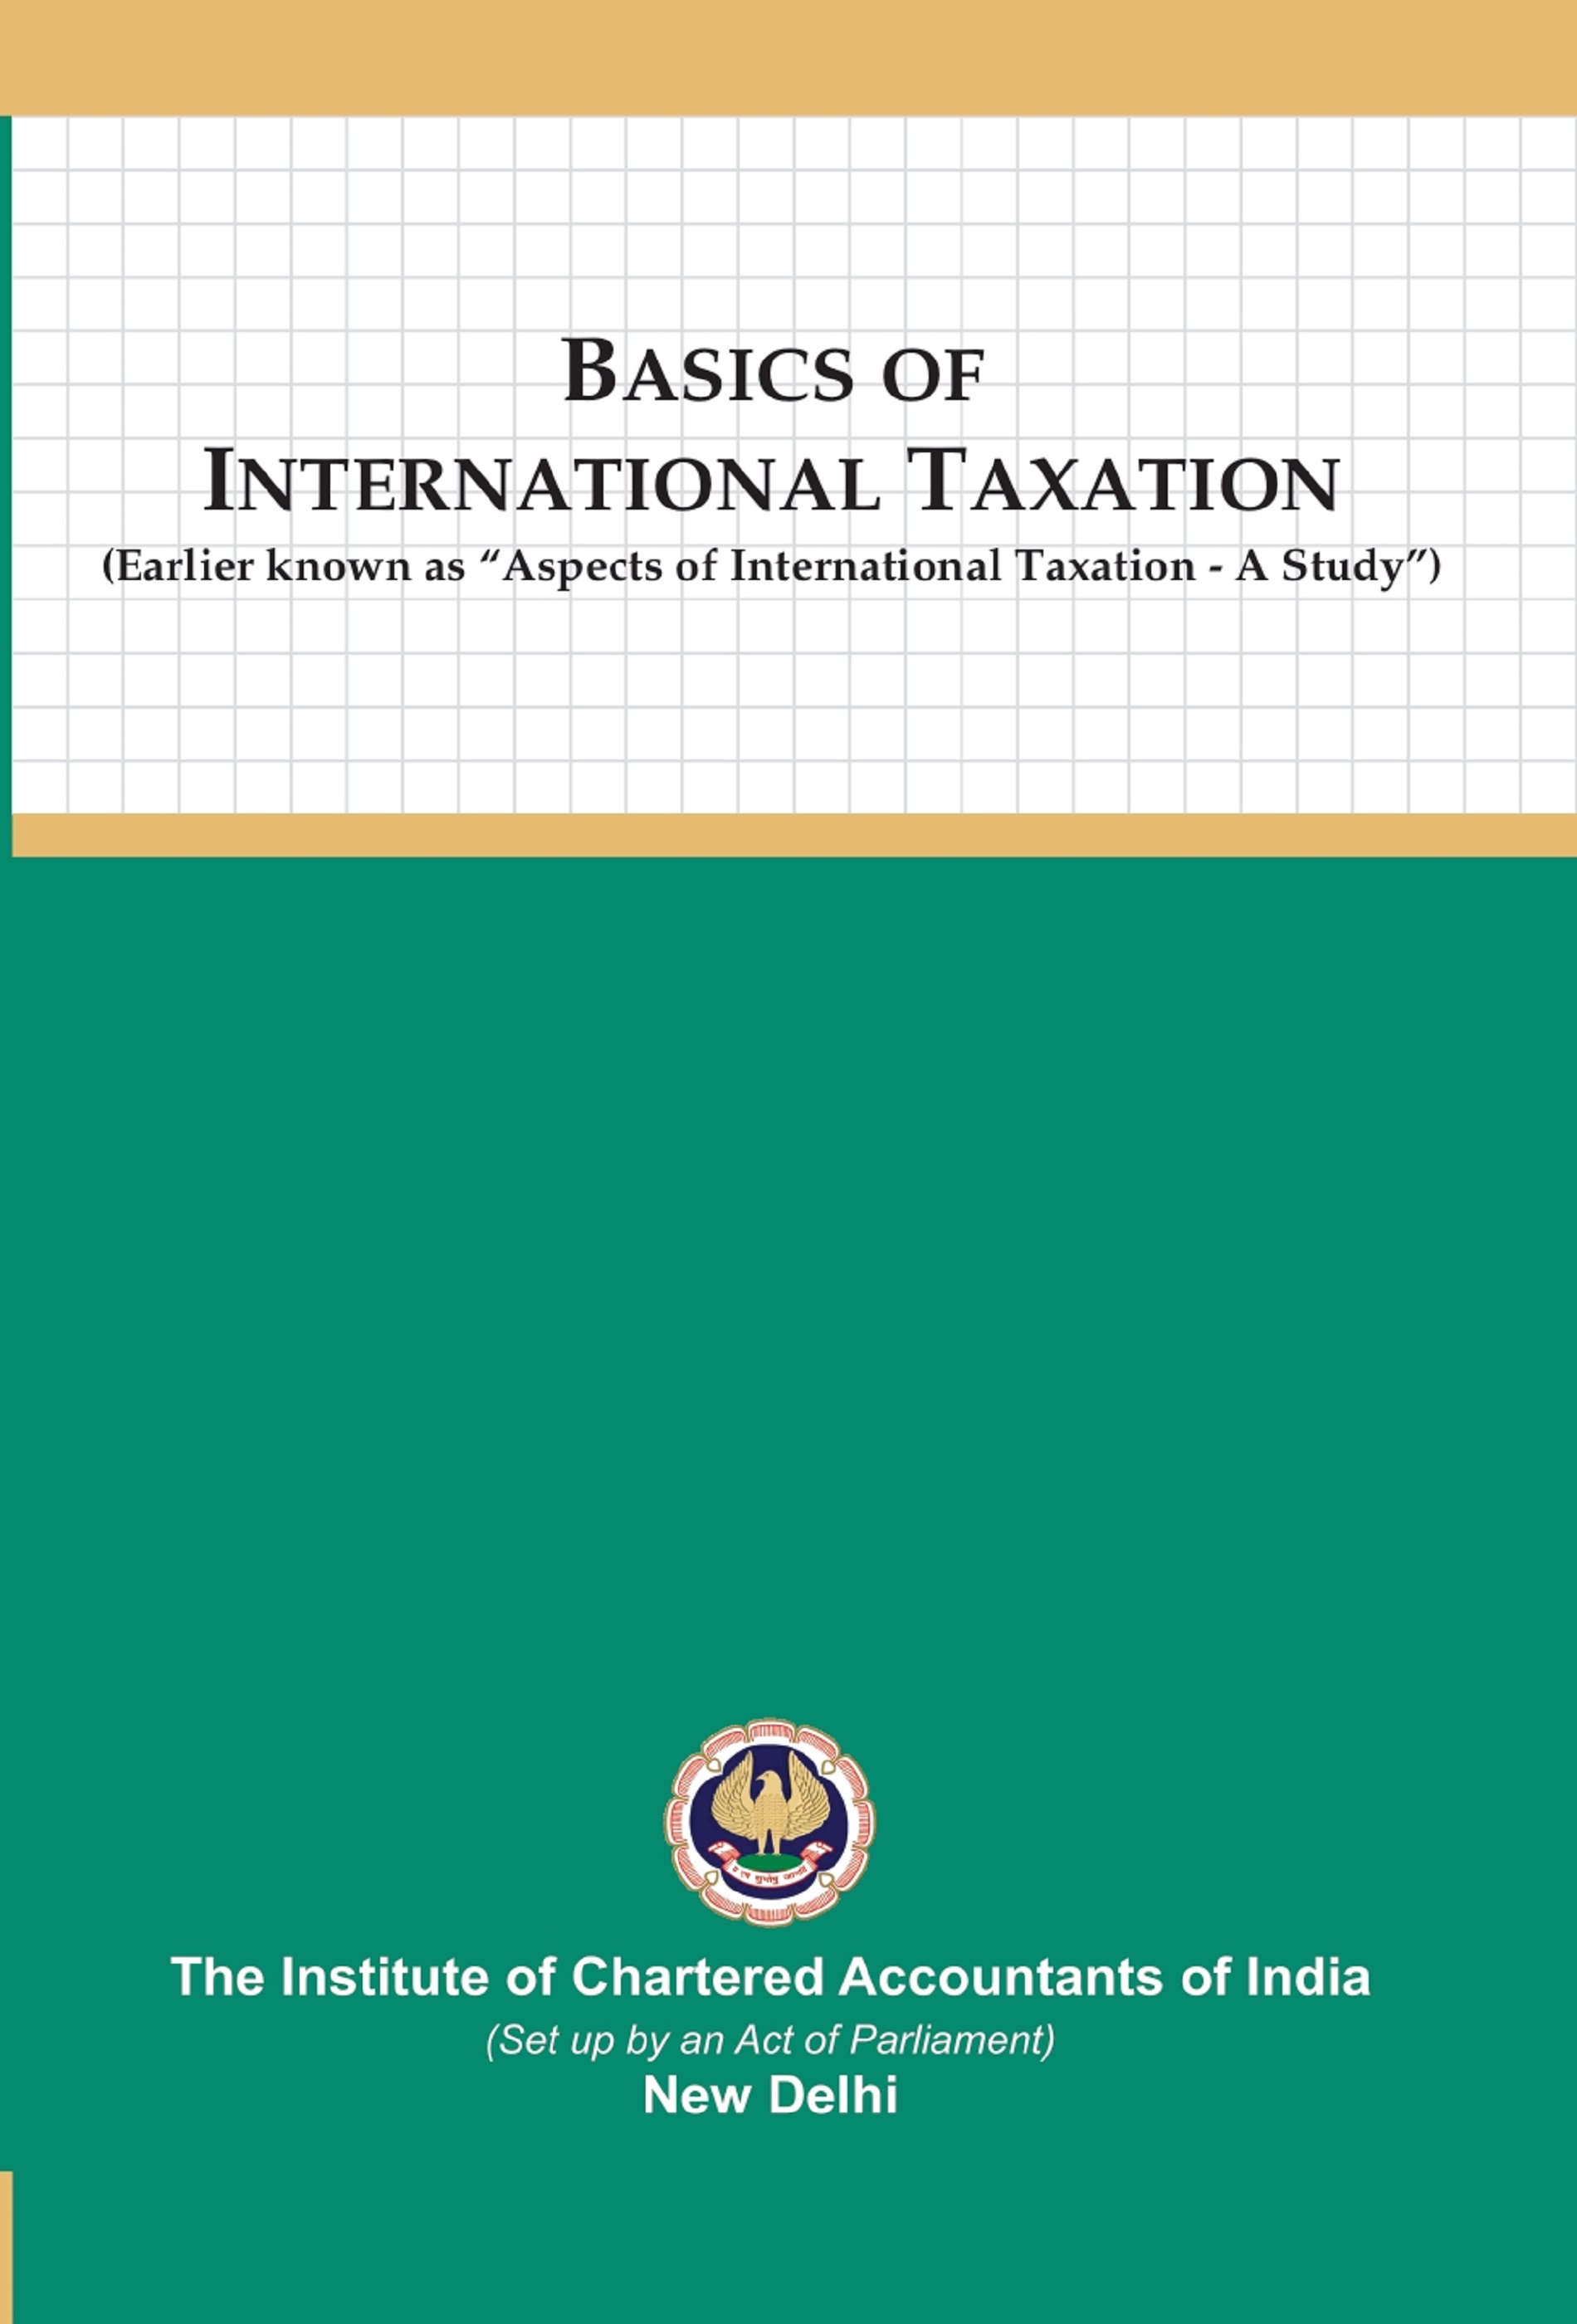 Basics of International Taxation (Earlier known as Aspects of International Taxation: A Study) (October, 2020)